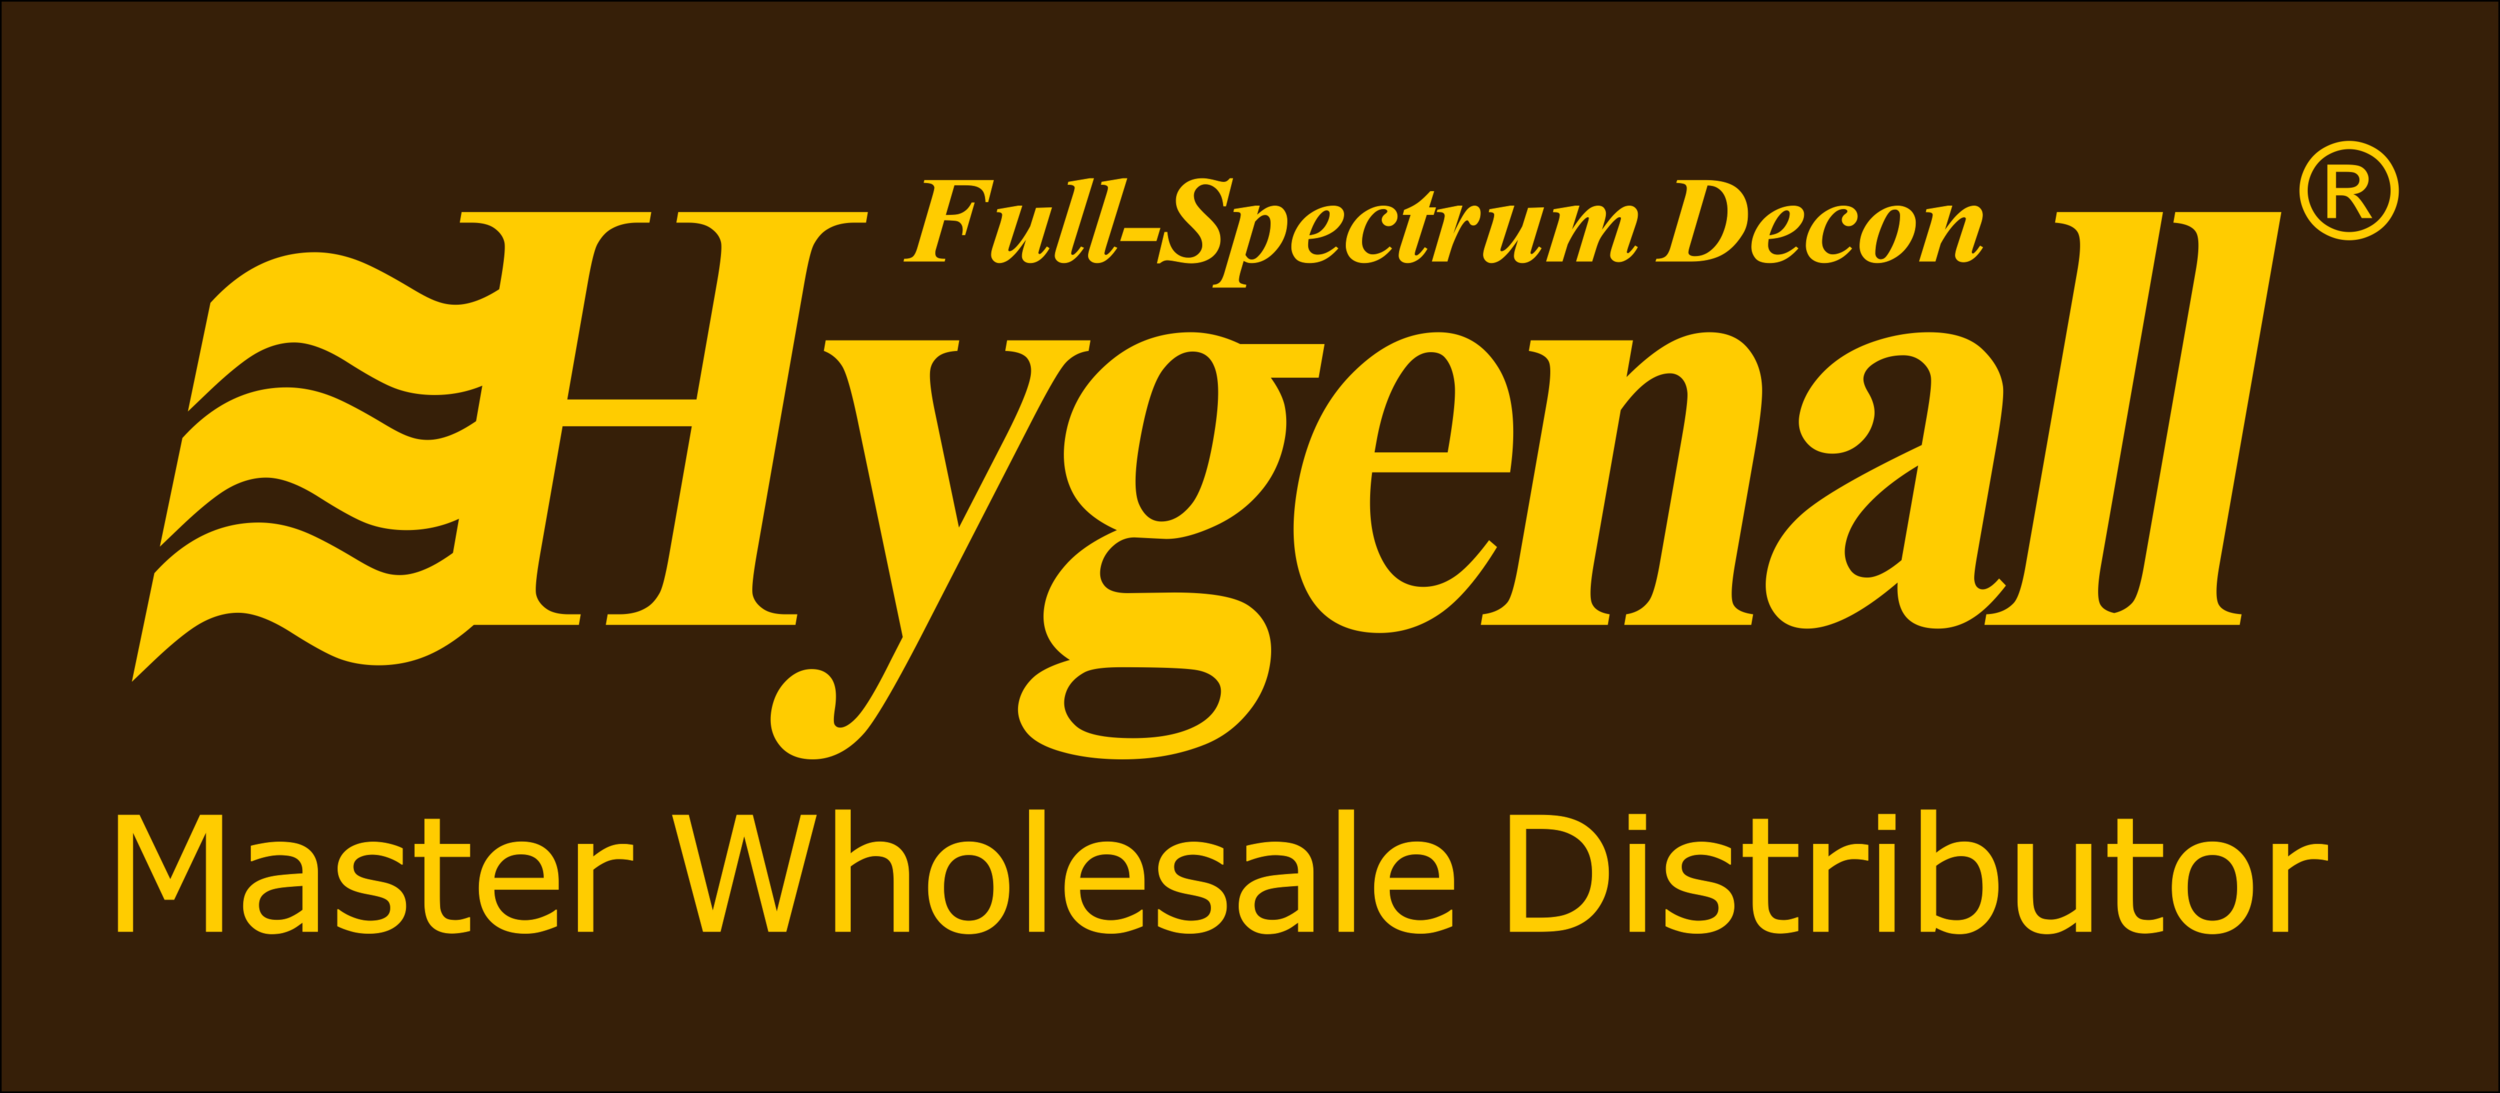 Hygenall Firefighter Safety Products Master Wholesale Distributor.png